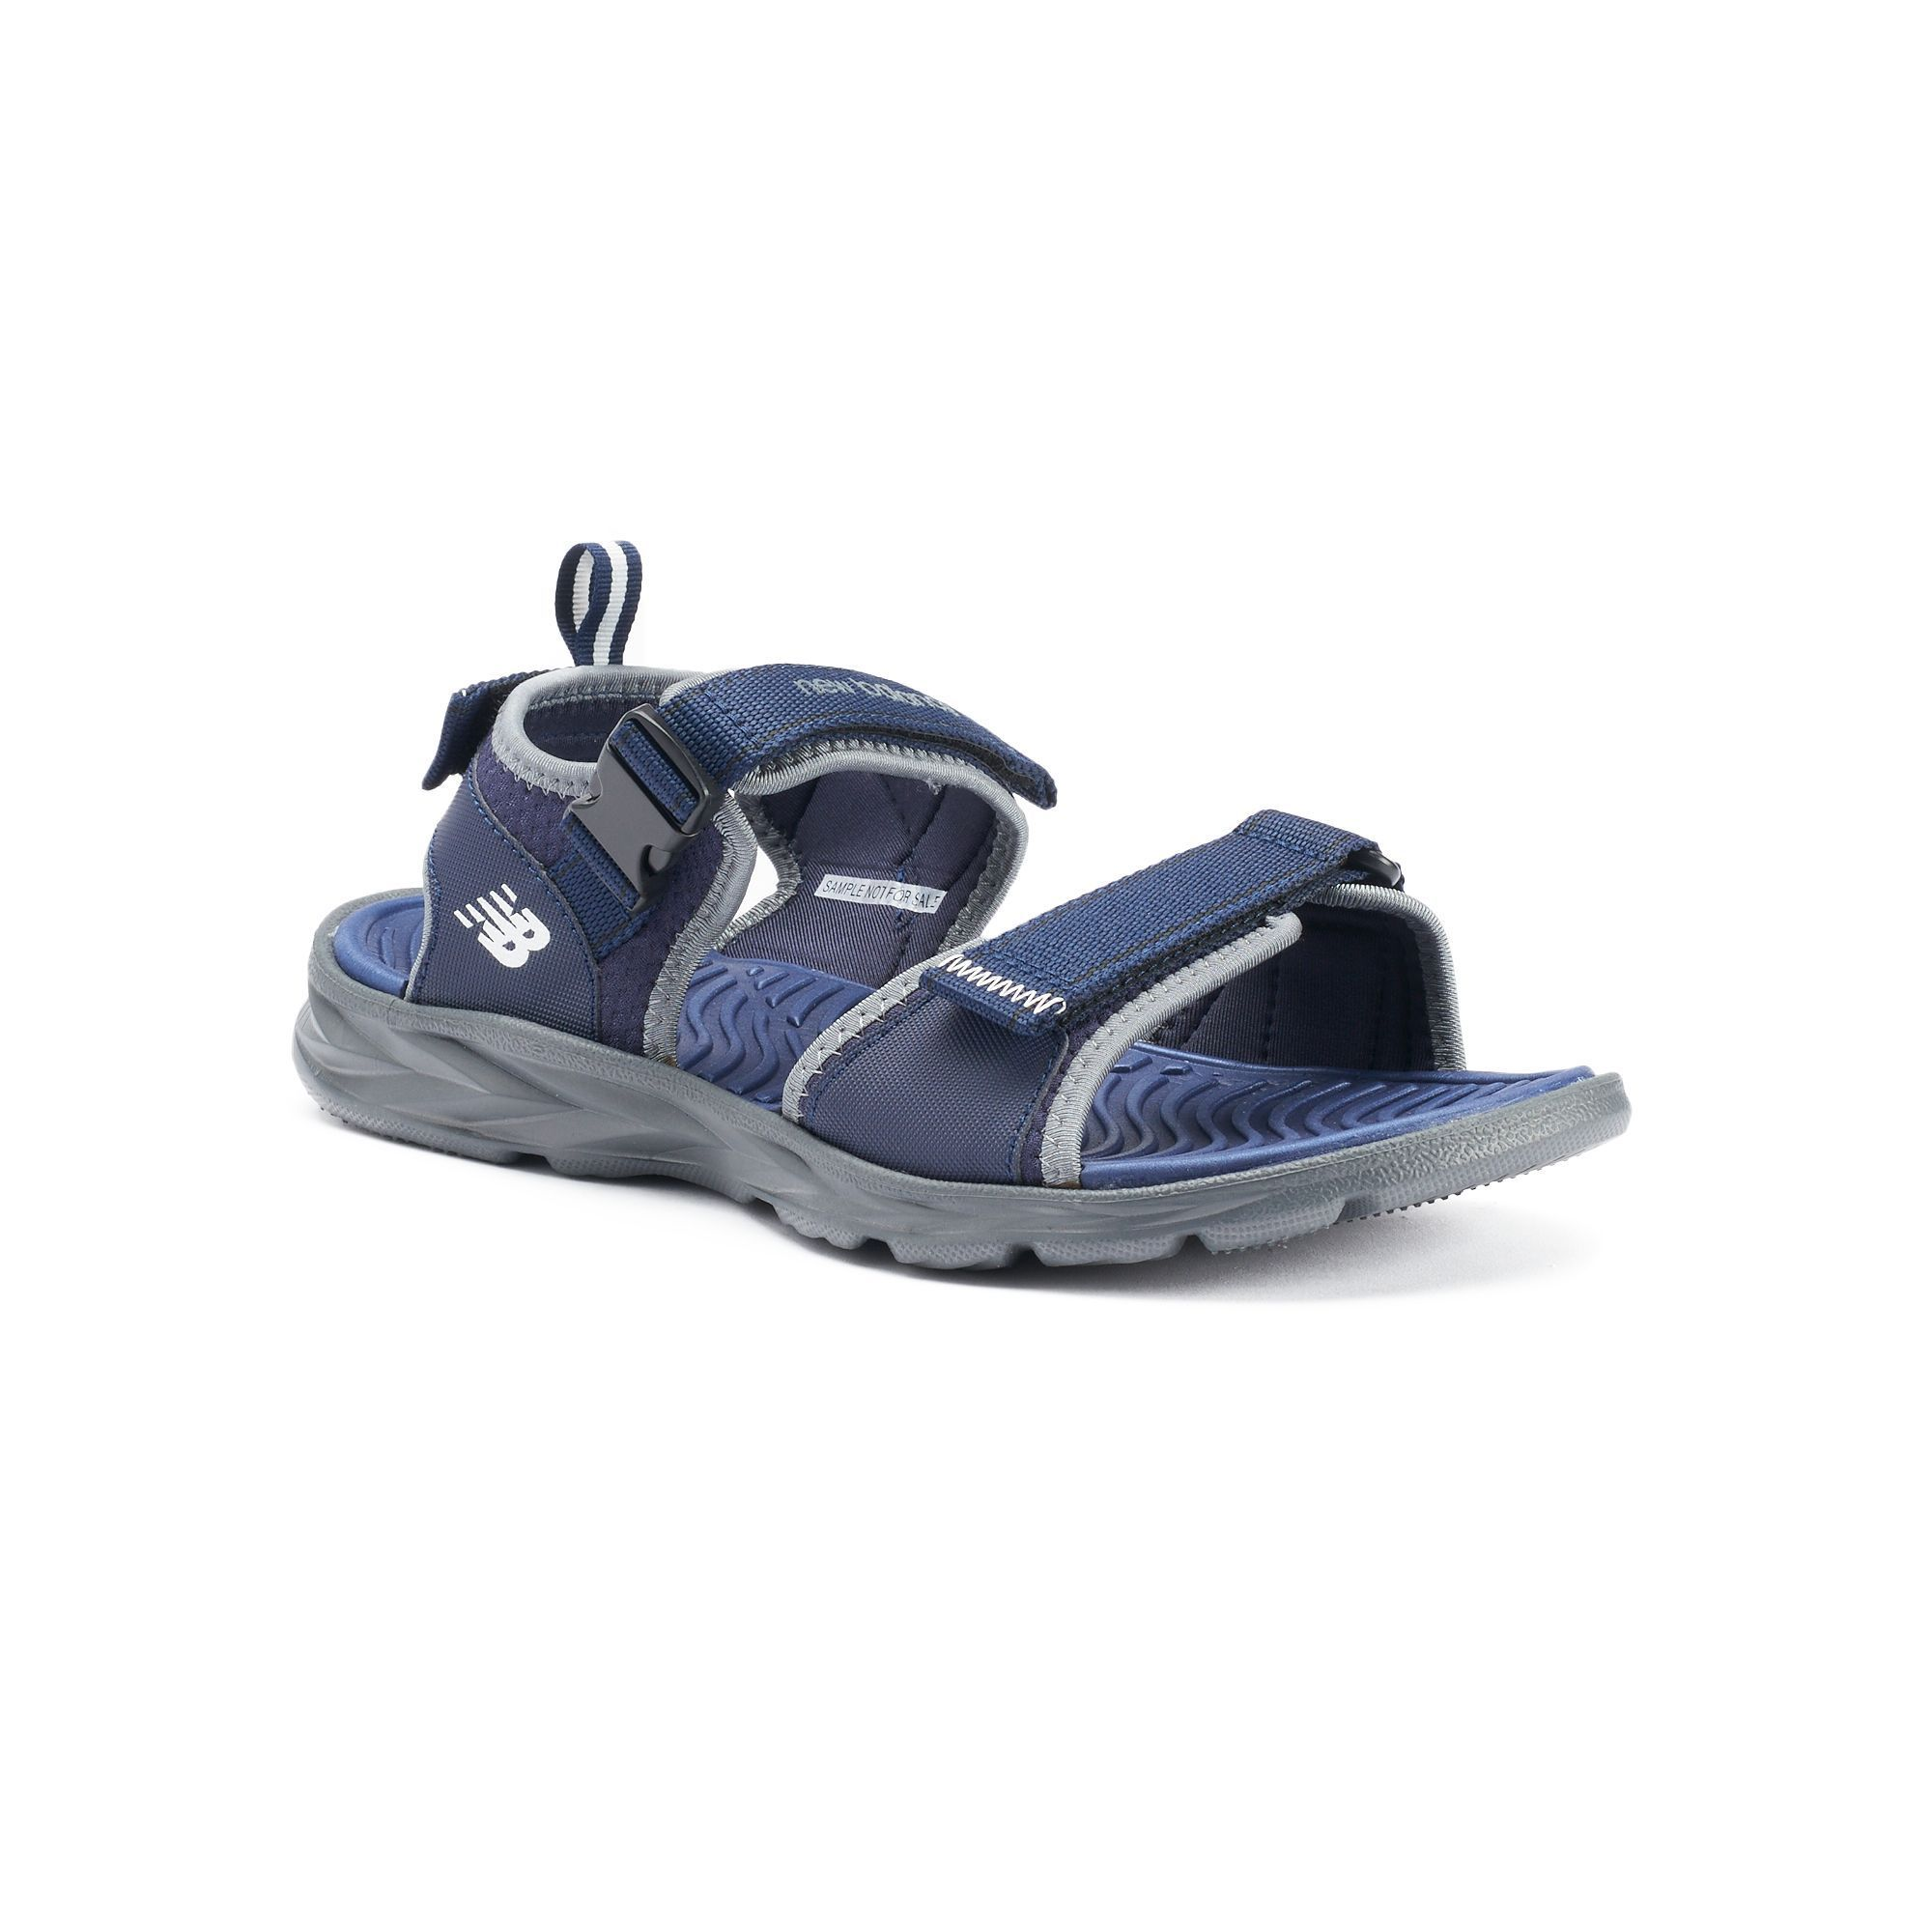 New Balance Response Men\u0027s Water-Resistant Sandals, Size: 14 Med, Blue  (Navy)